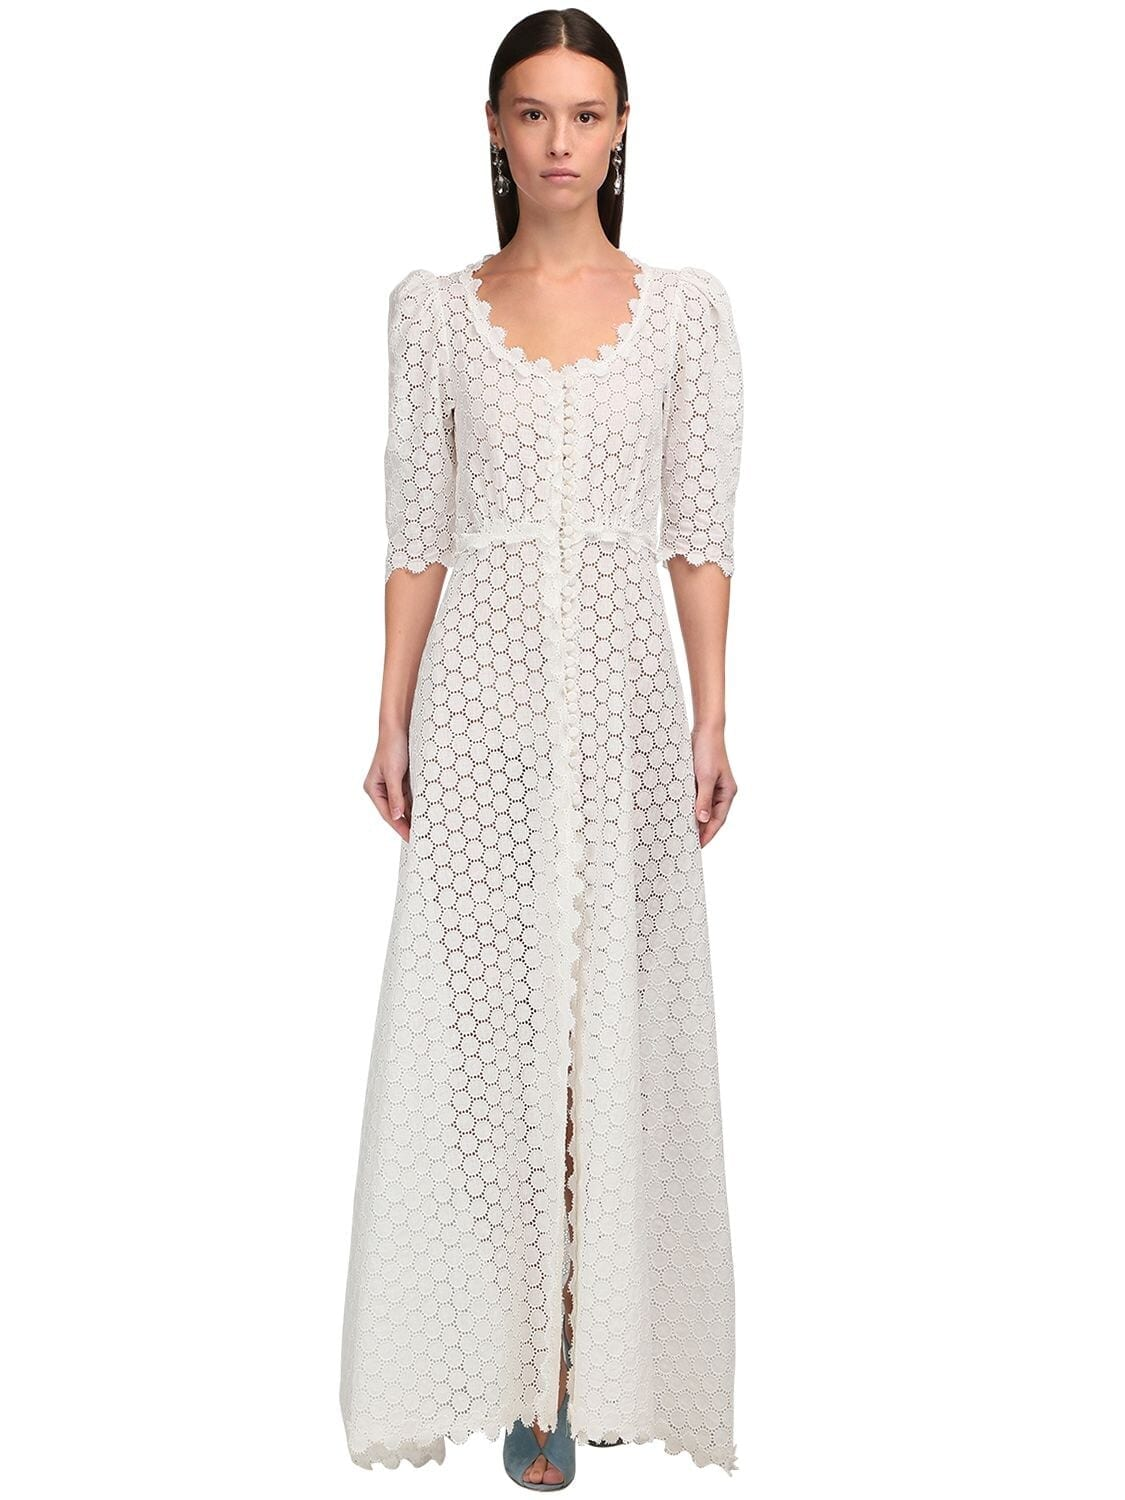 LUISA BECCARIA Button-up Linen Eyelet Lace Long Dress